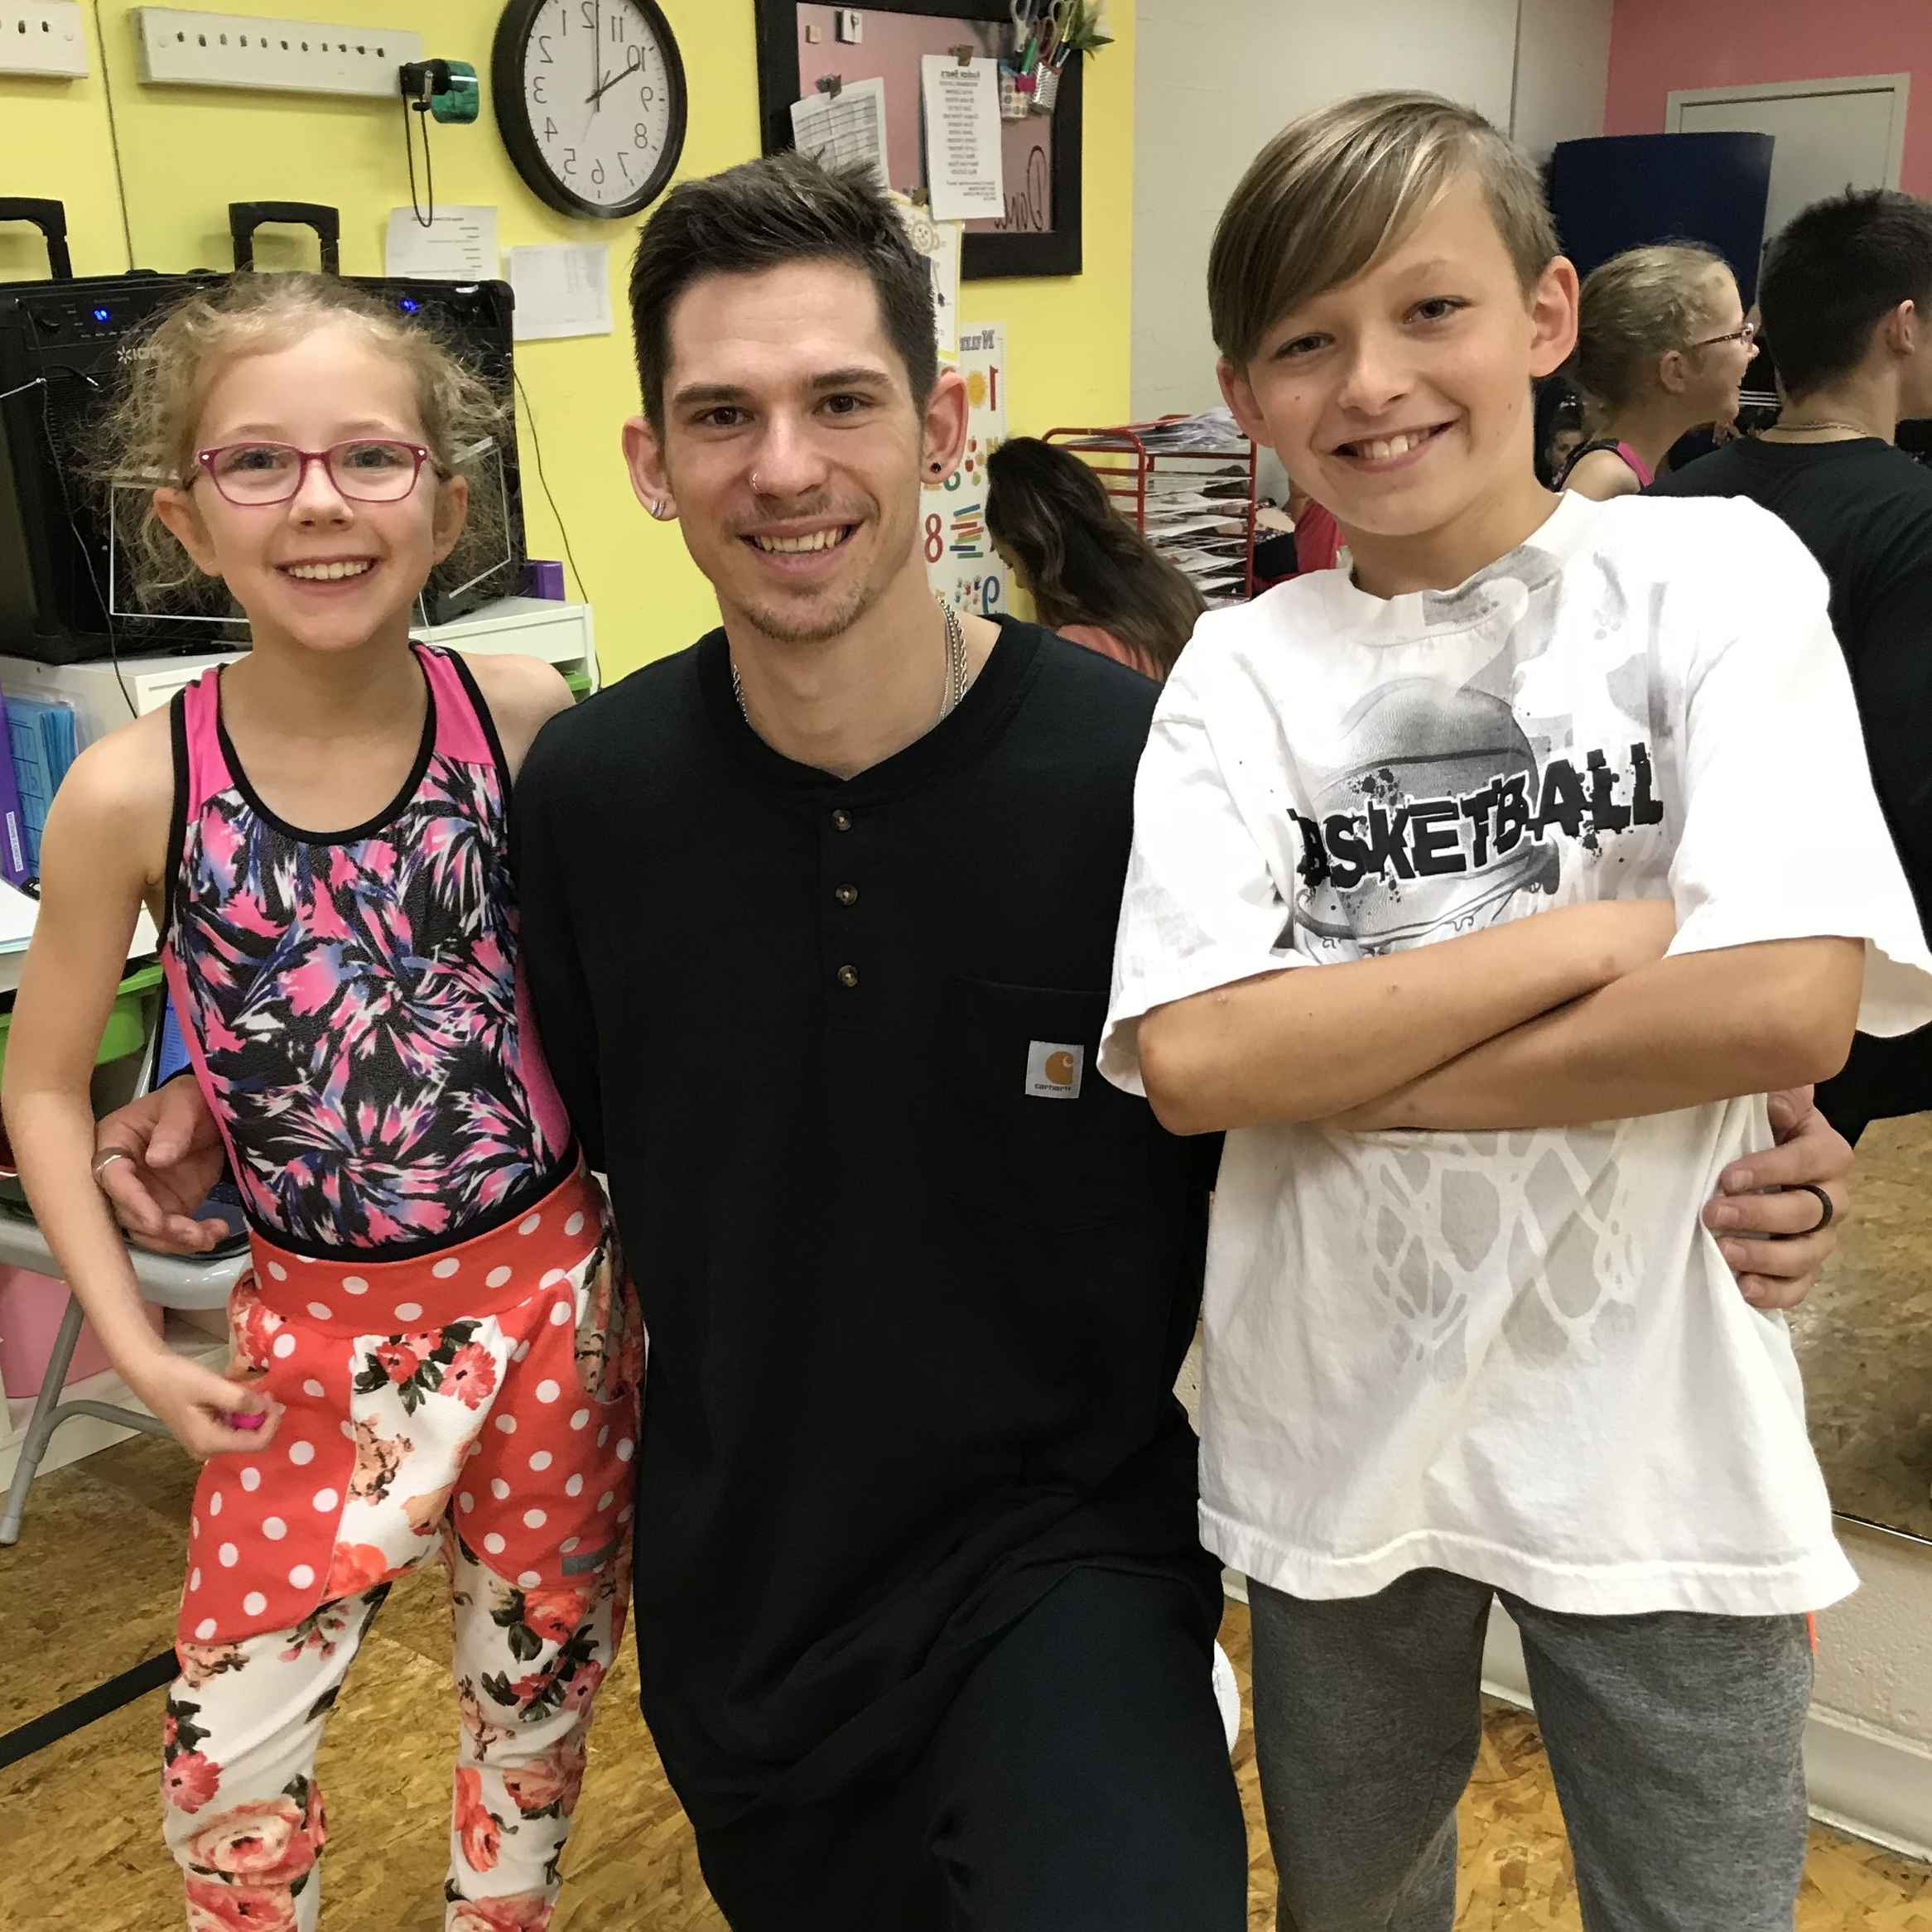 """""""My daughter has been at this dance studio for two years now.She has learned so much about sharing, taking turns, dance, and being a good friend. She always looks forward to going.It is a great price for classes and everything is so organized. She looks forward to it everyday.I love the atmosphere and everything she is learning."""""""